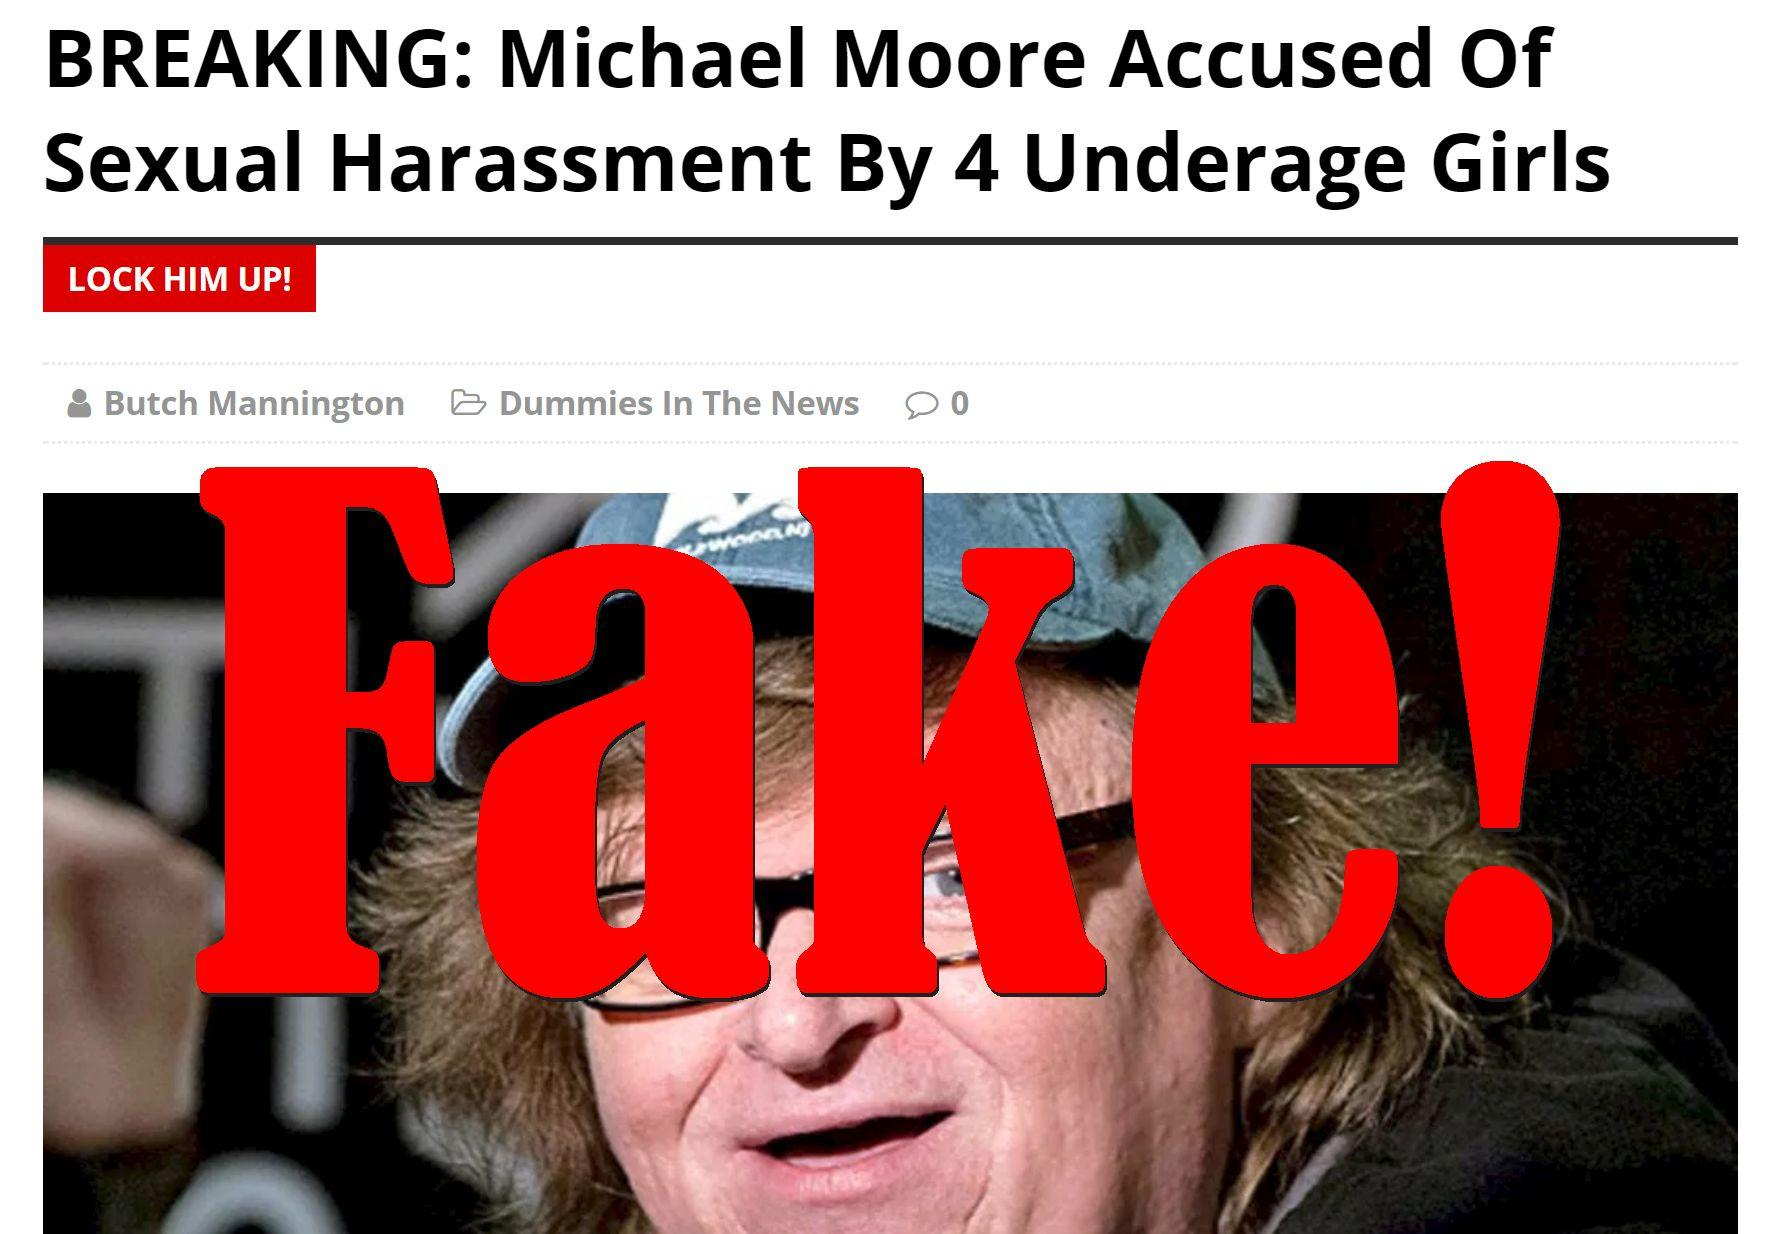 Fake News: Michael Moore NOT Accused Of Sexual Harassment By 4 Underage Girls